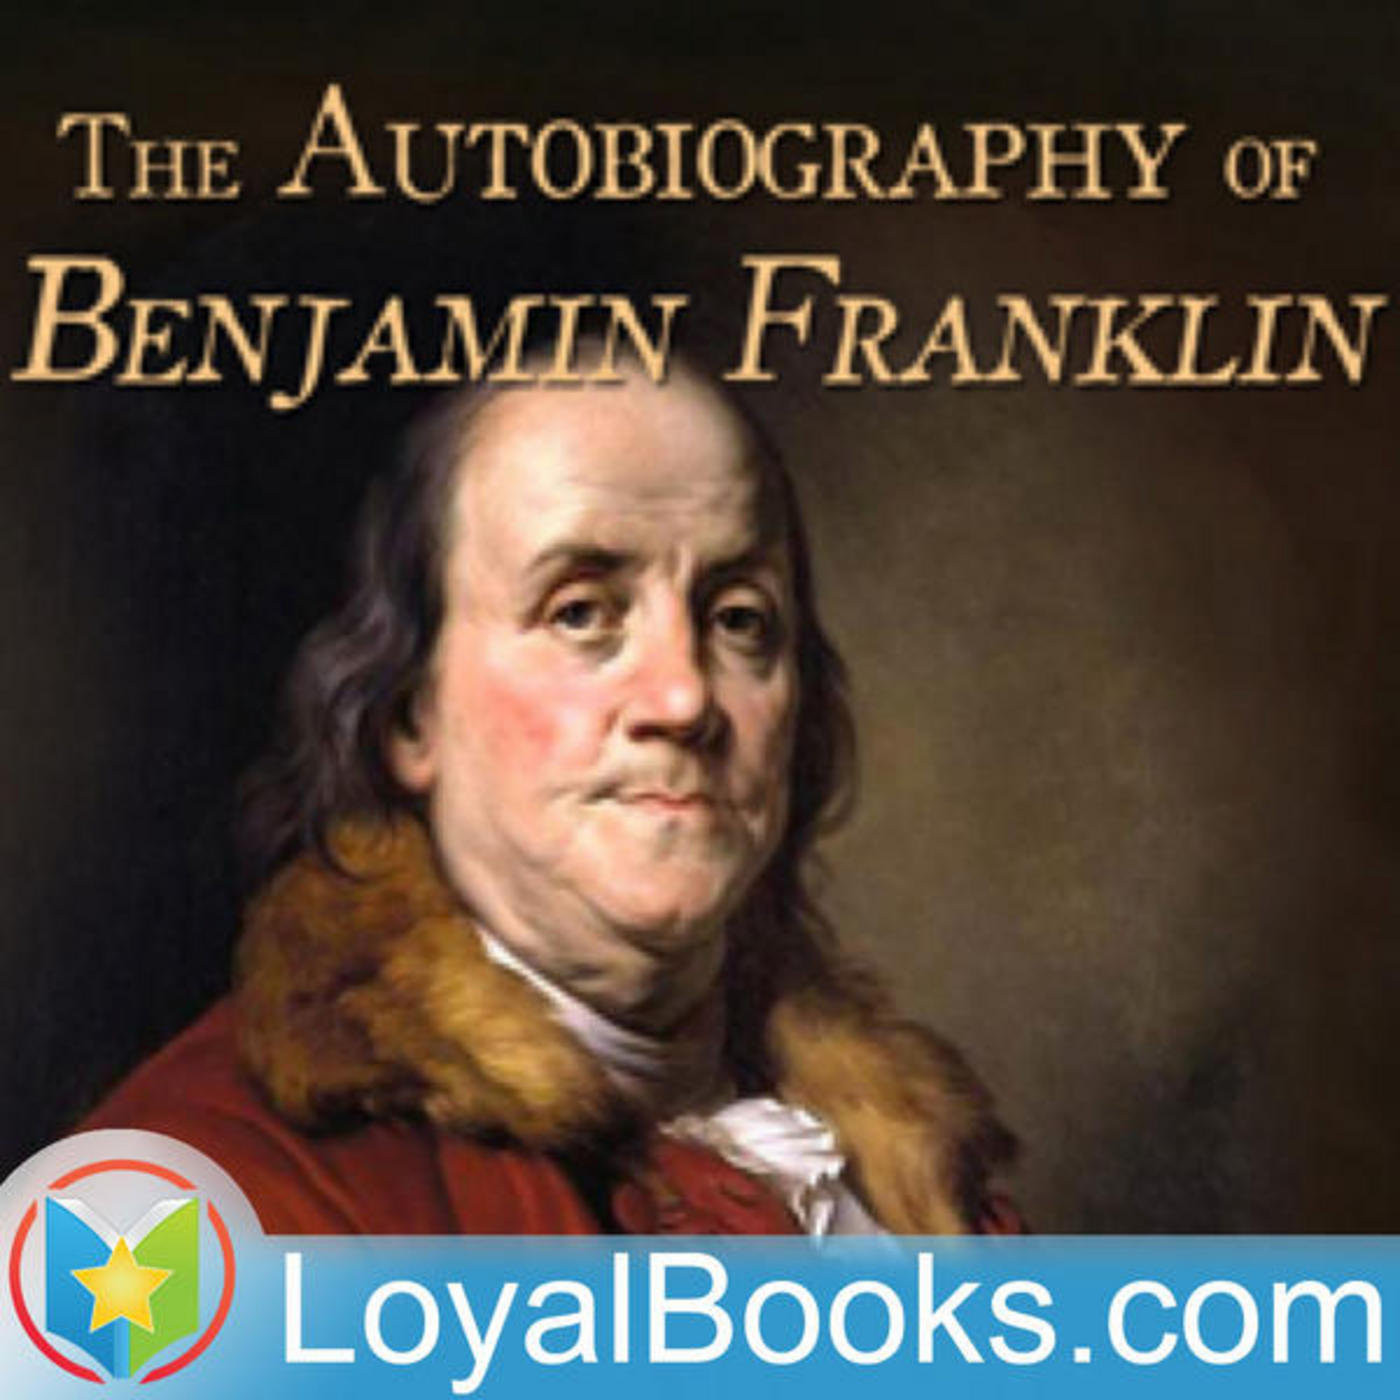 a autobiography of benjamin franklin Benjamin franklin's autobiography is both an important historical document and franklin's major literary work it was not only the first autobiography to achieve widespread popularity, but after two hundred years remains one of the most enduringly popular examples of the genre ever written.